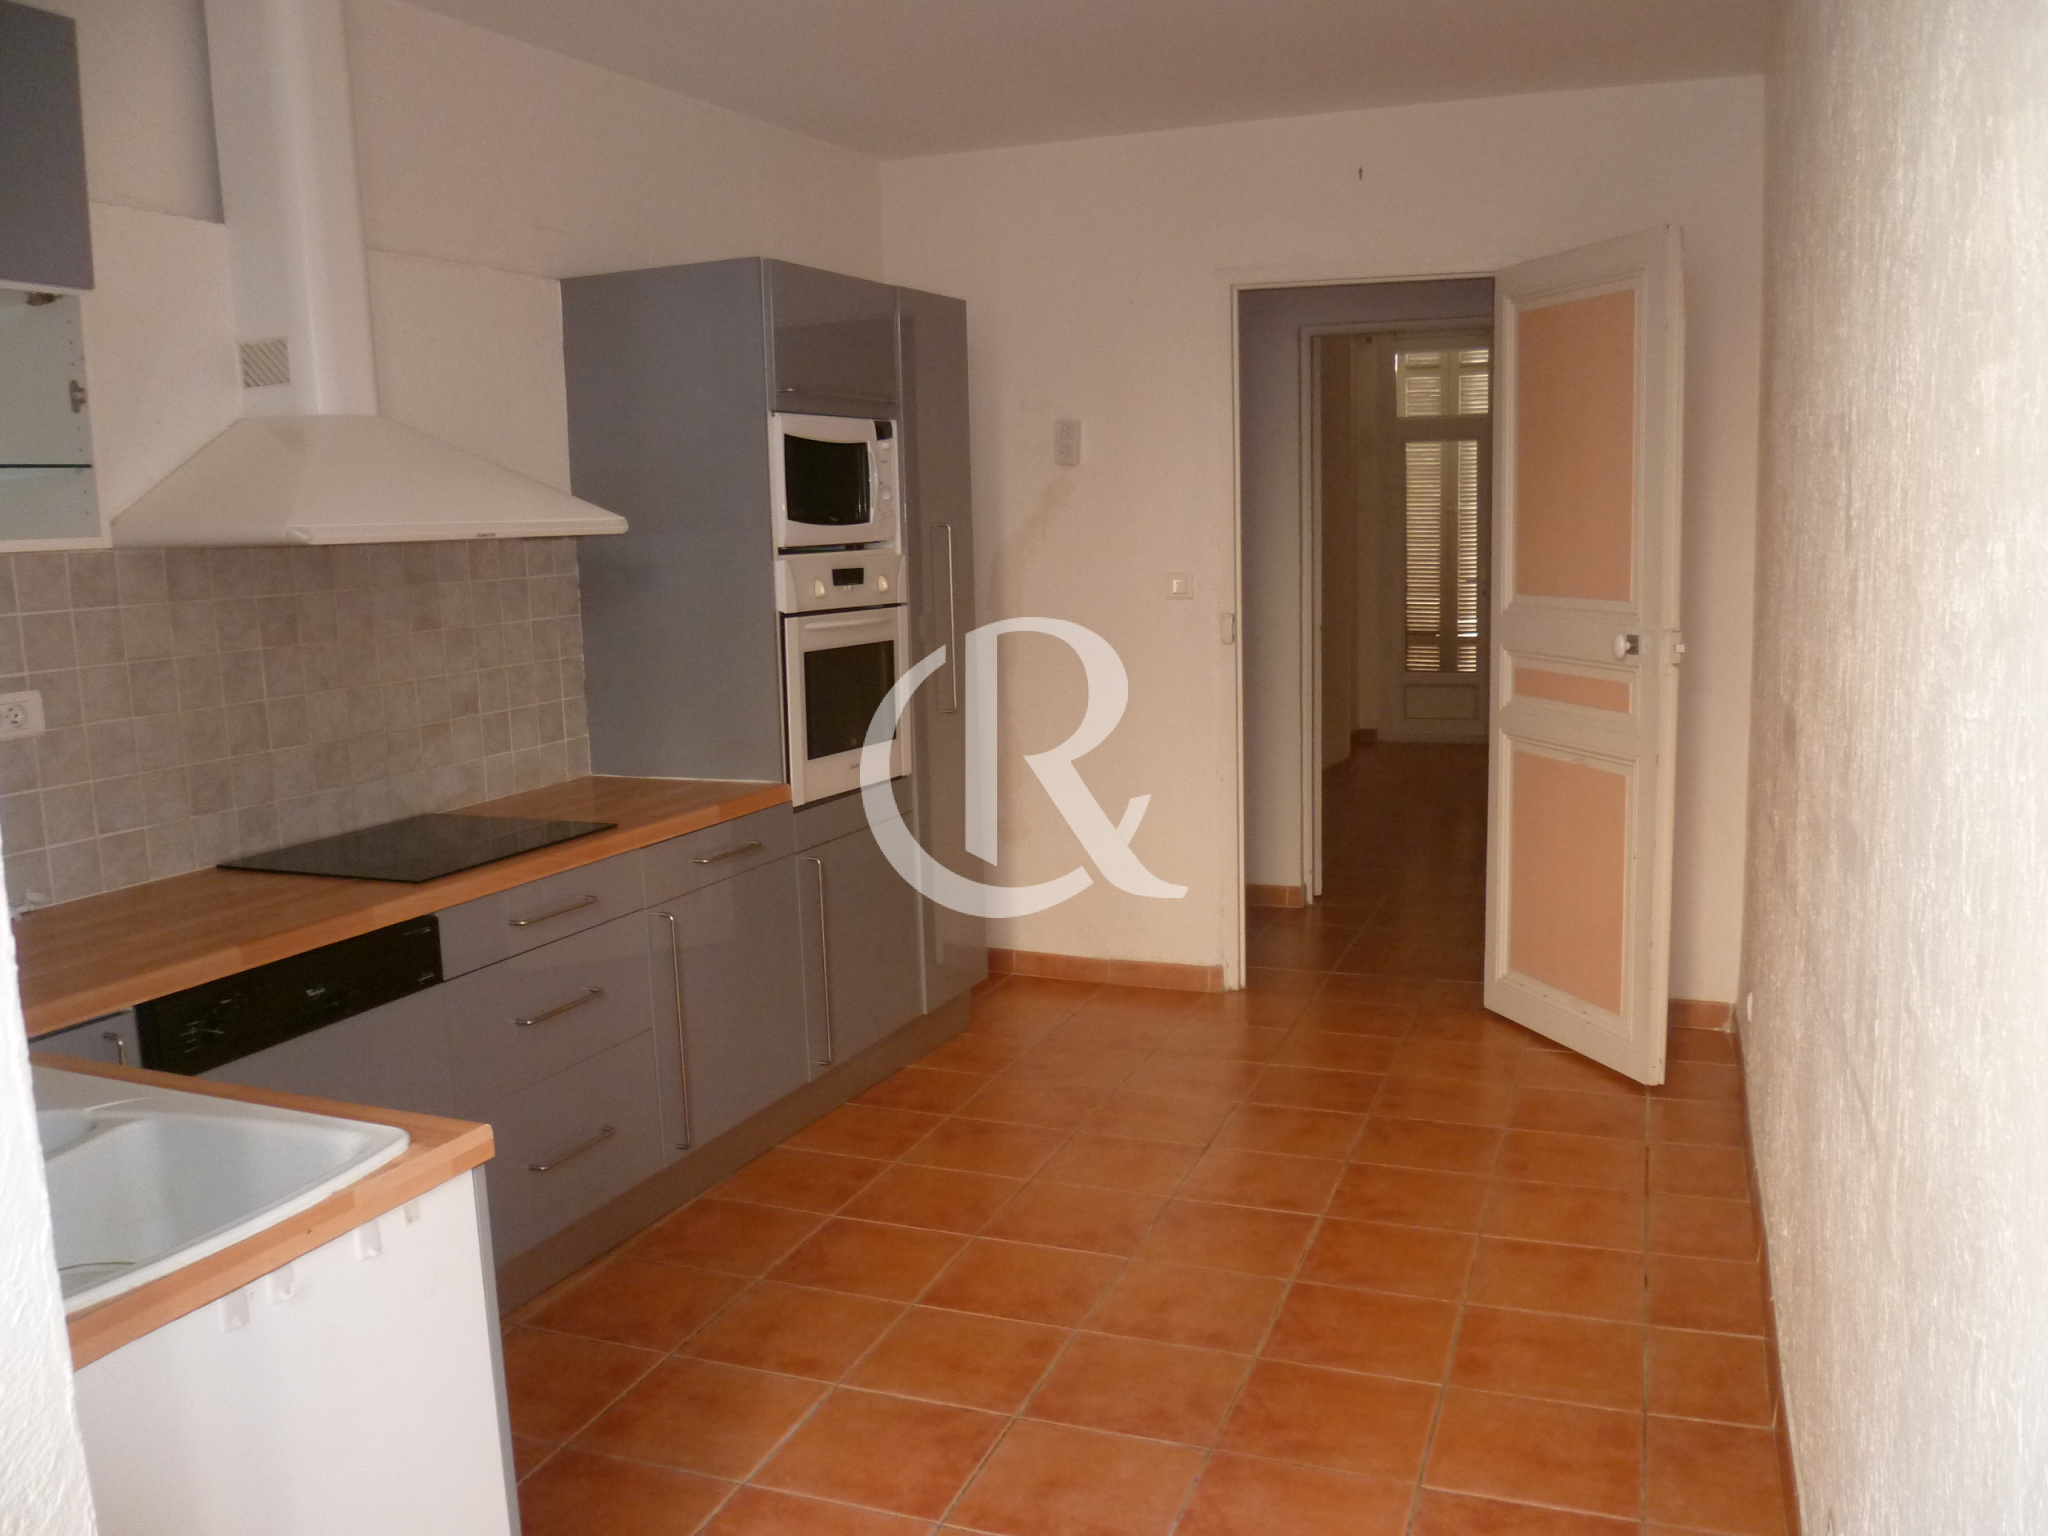 Location Appartements Hy Res Giens Et Environs